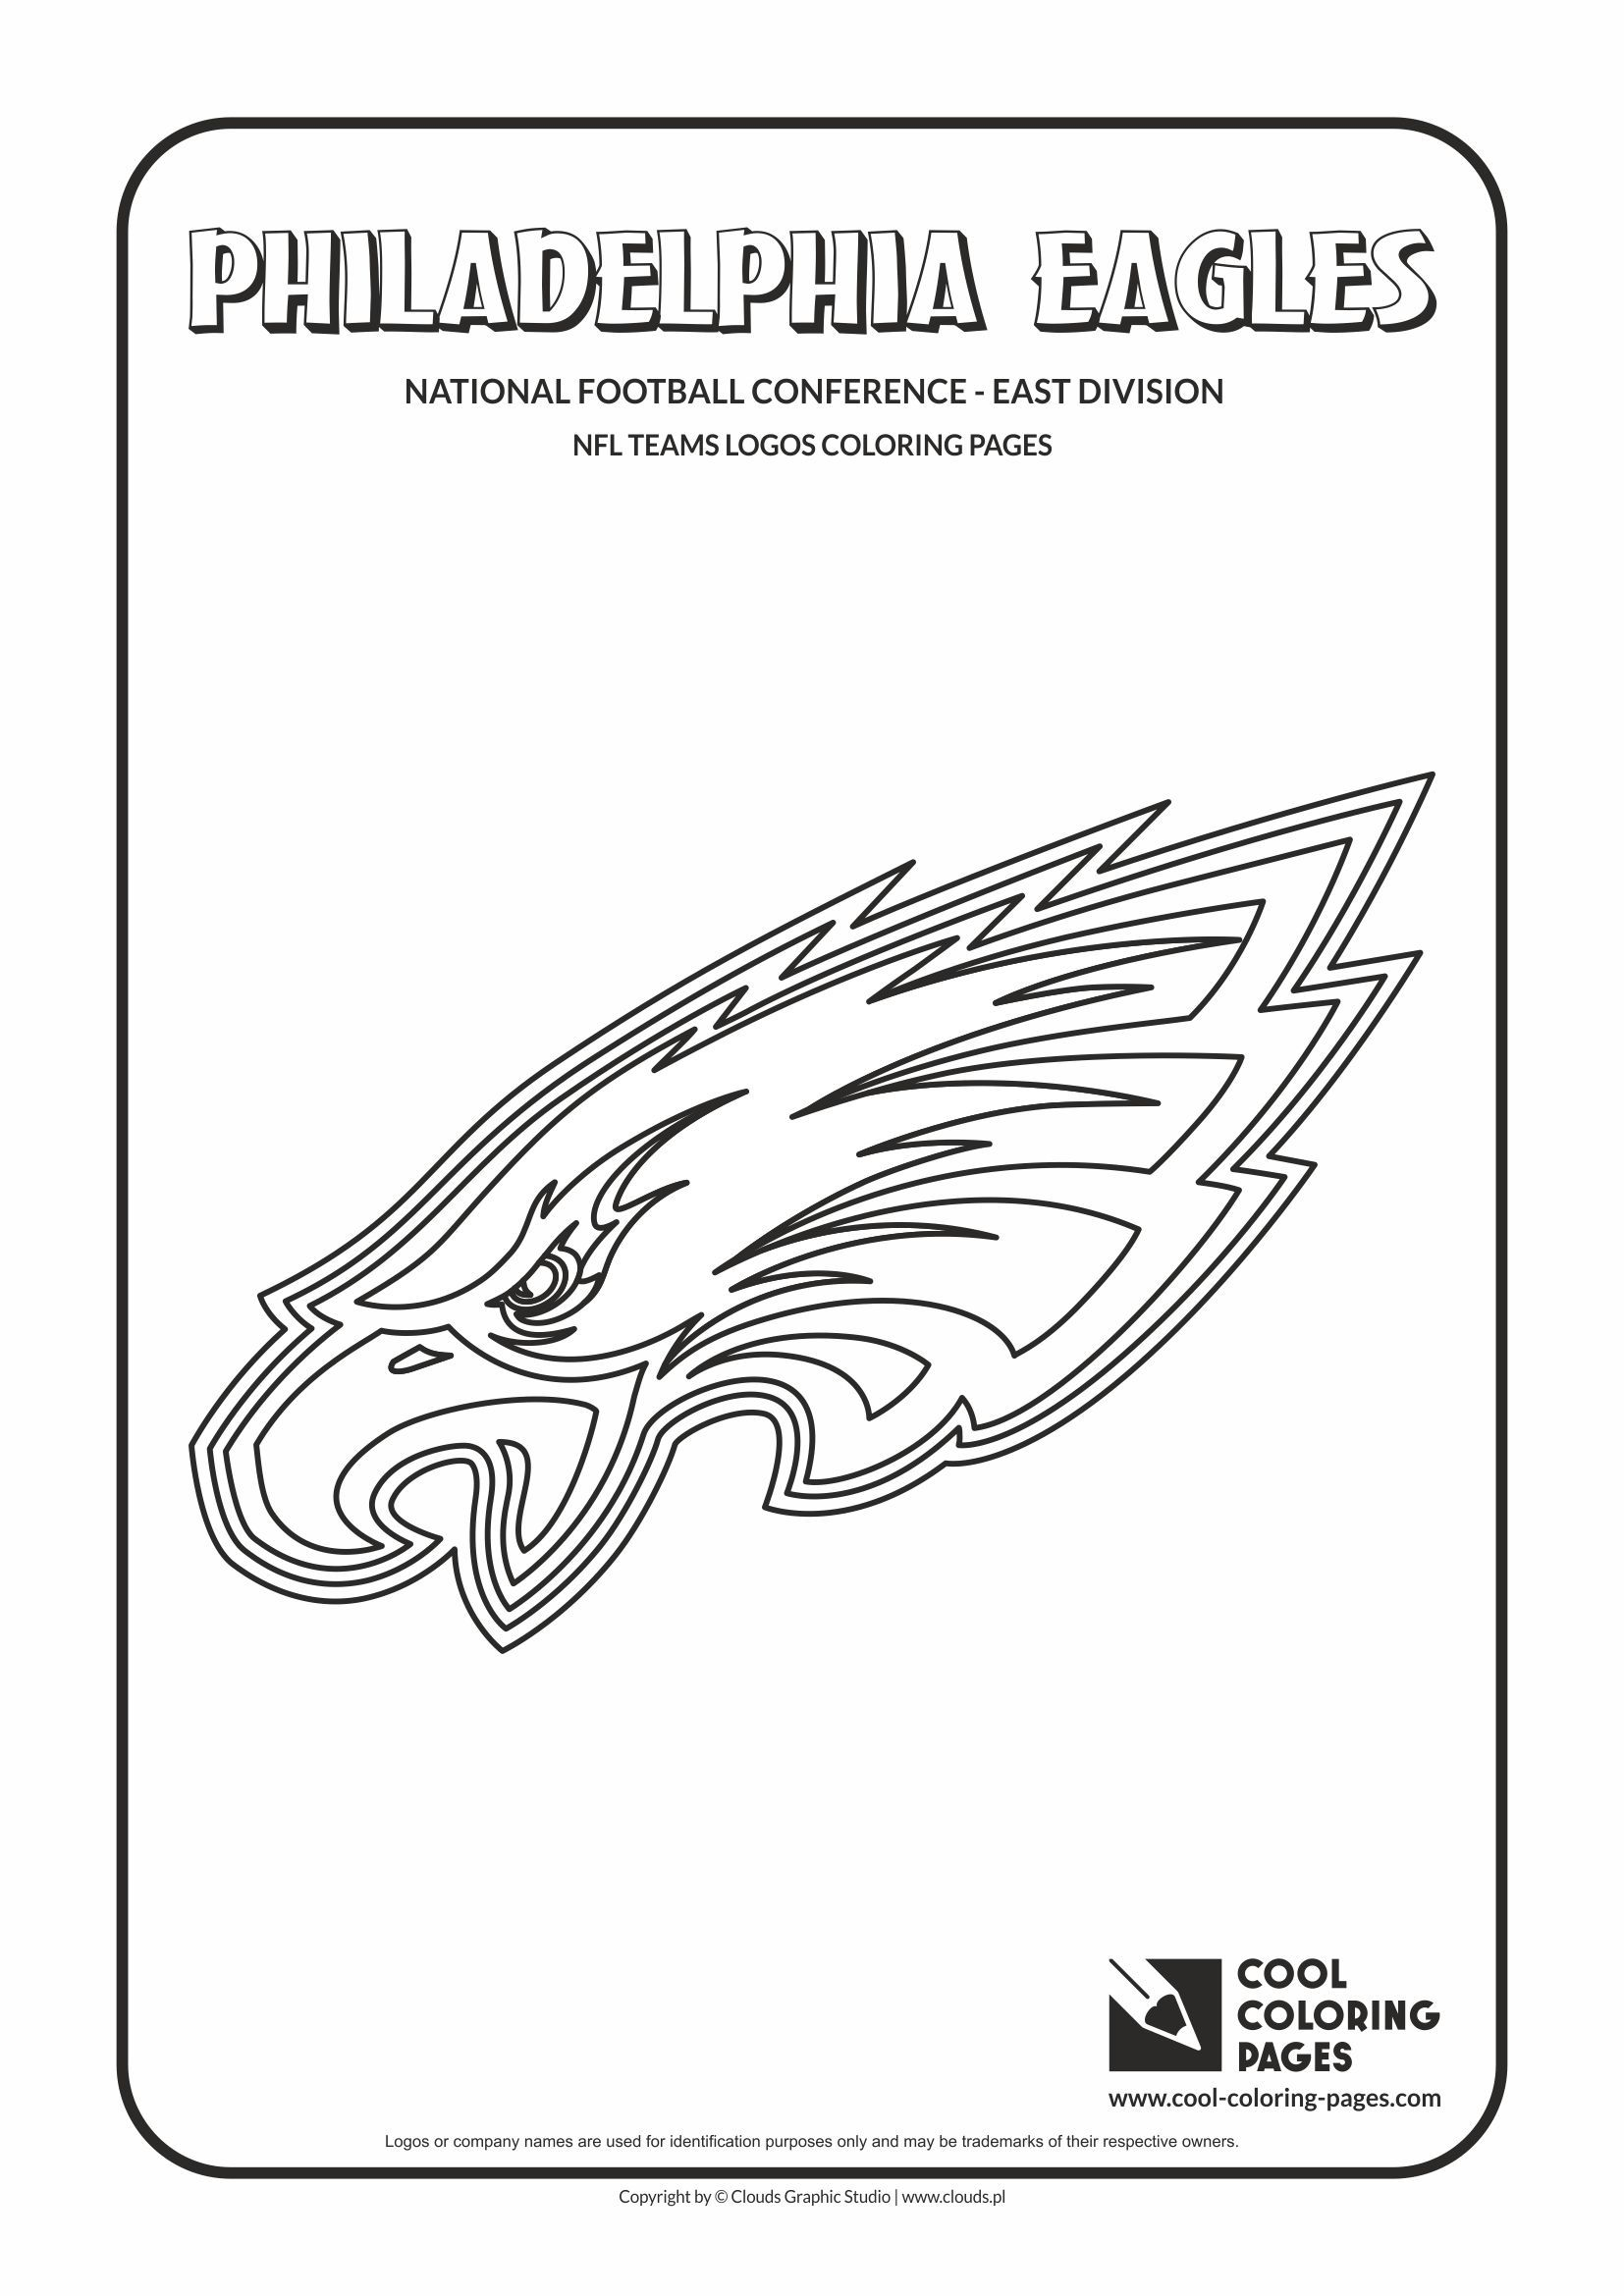 Philadelphia Eagles Nfl American Football Teams Logos Coloring